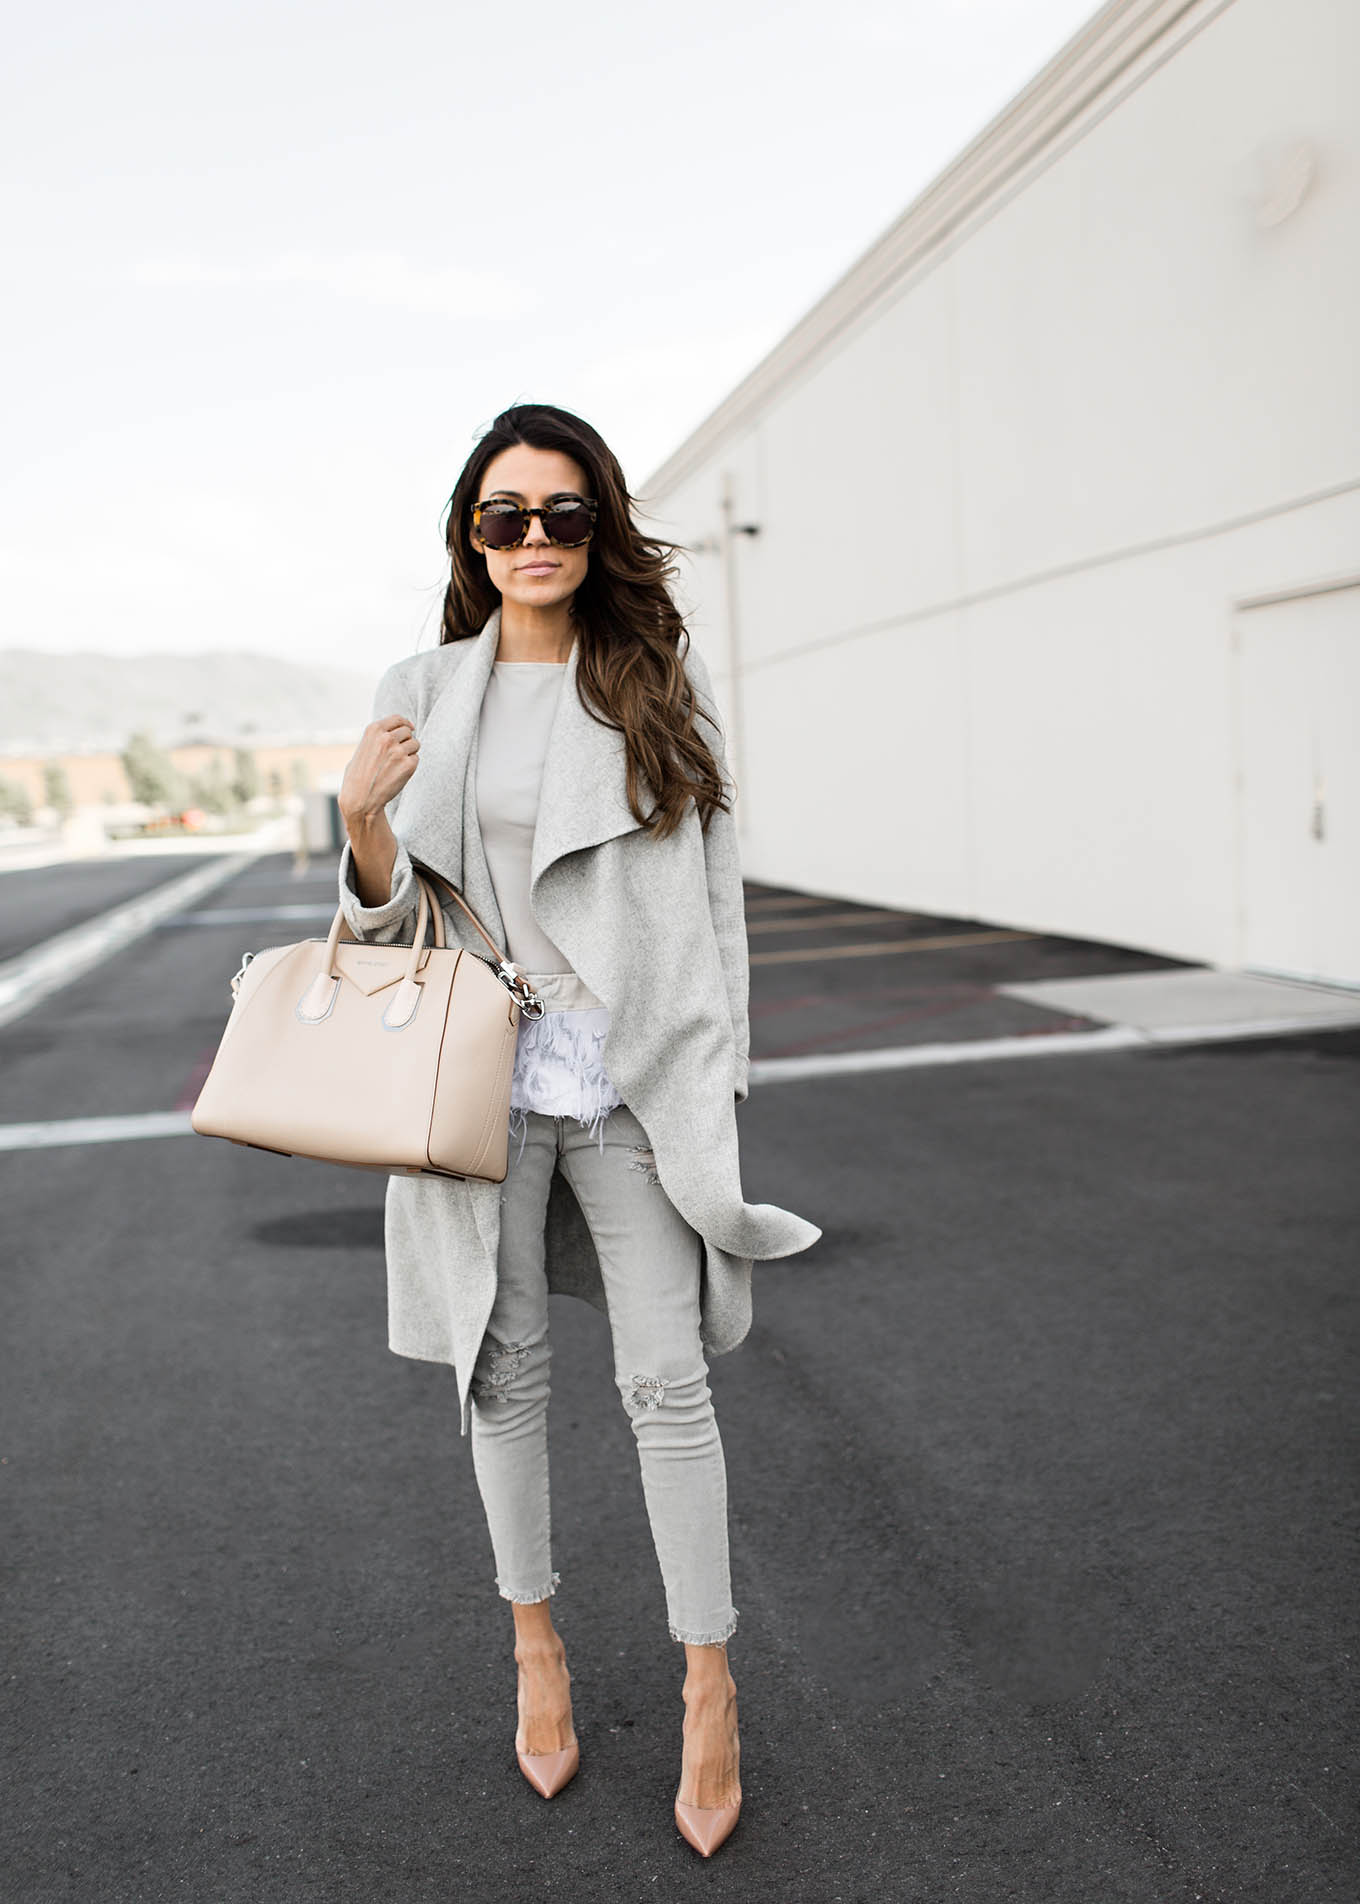 Christine Andrew is looking effortlessly stylish in this grey on grey ensemble consisting of a wrap coat, a pair of grey skinnies and a cute fringe detailed top. This colour scheme is ideal for everyday neutral wear! Top/Jeans: Nordstrom.